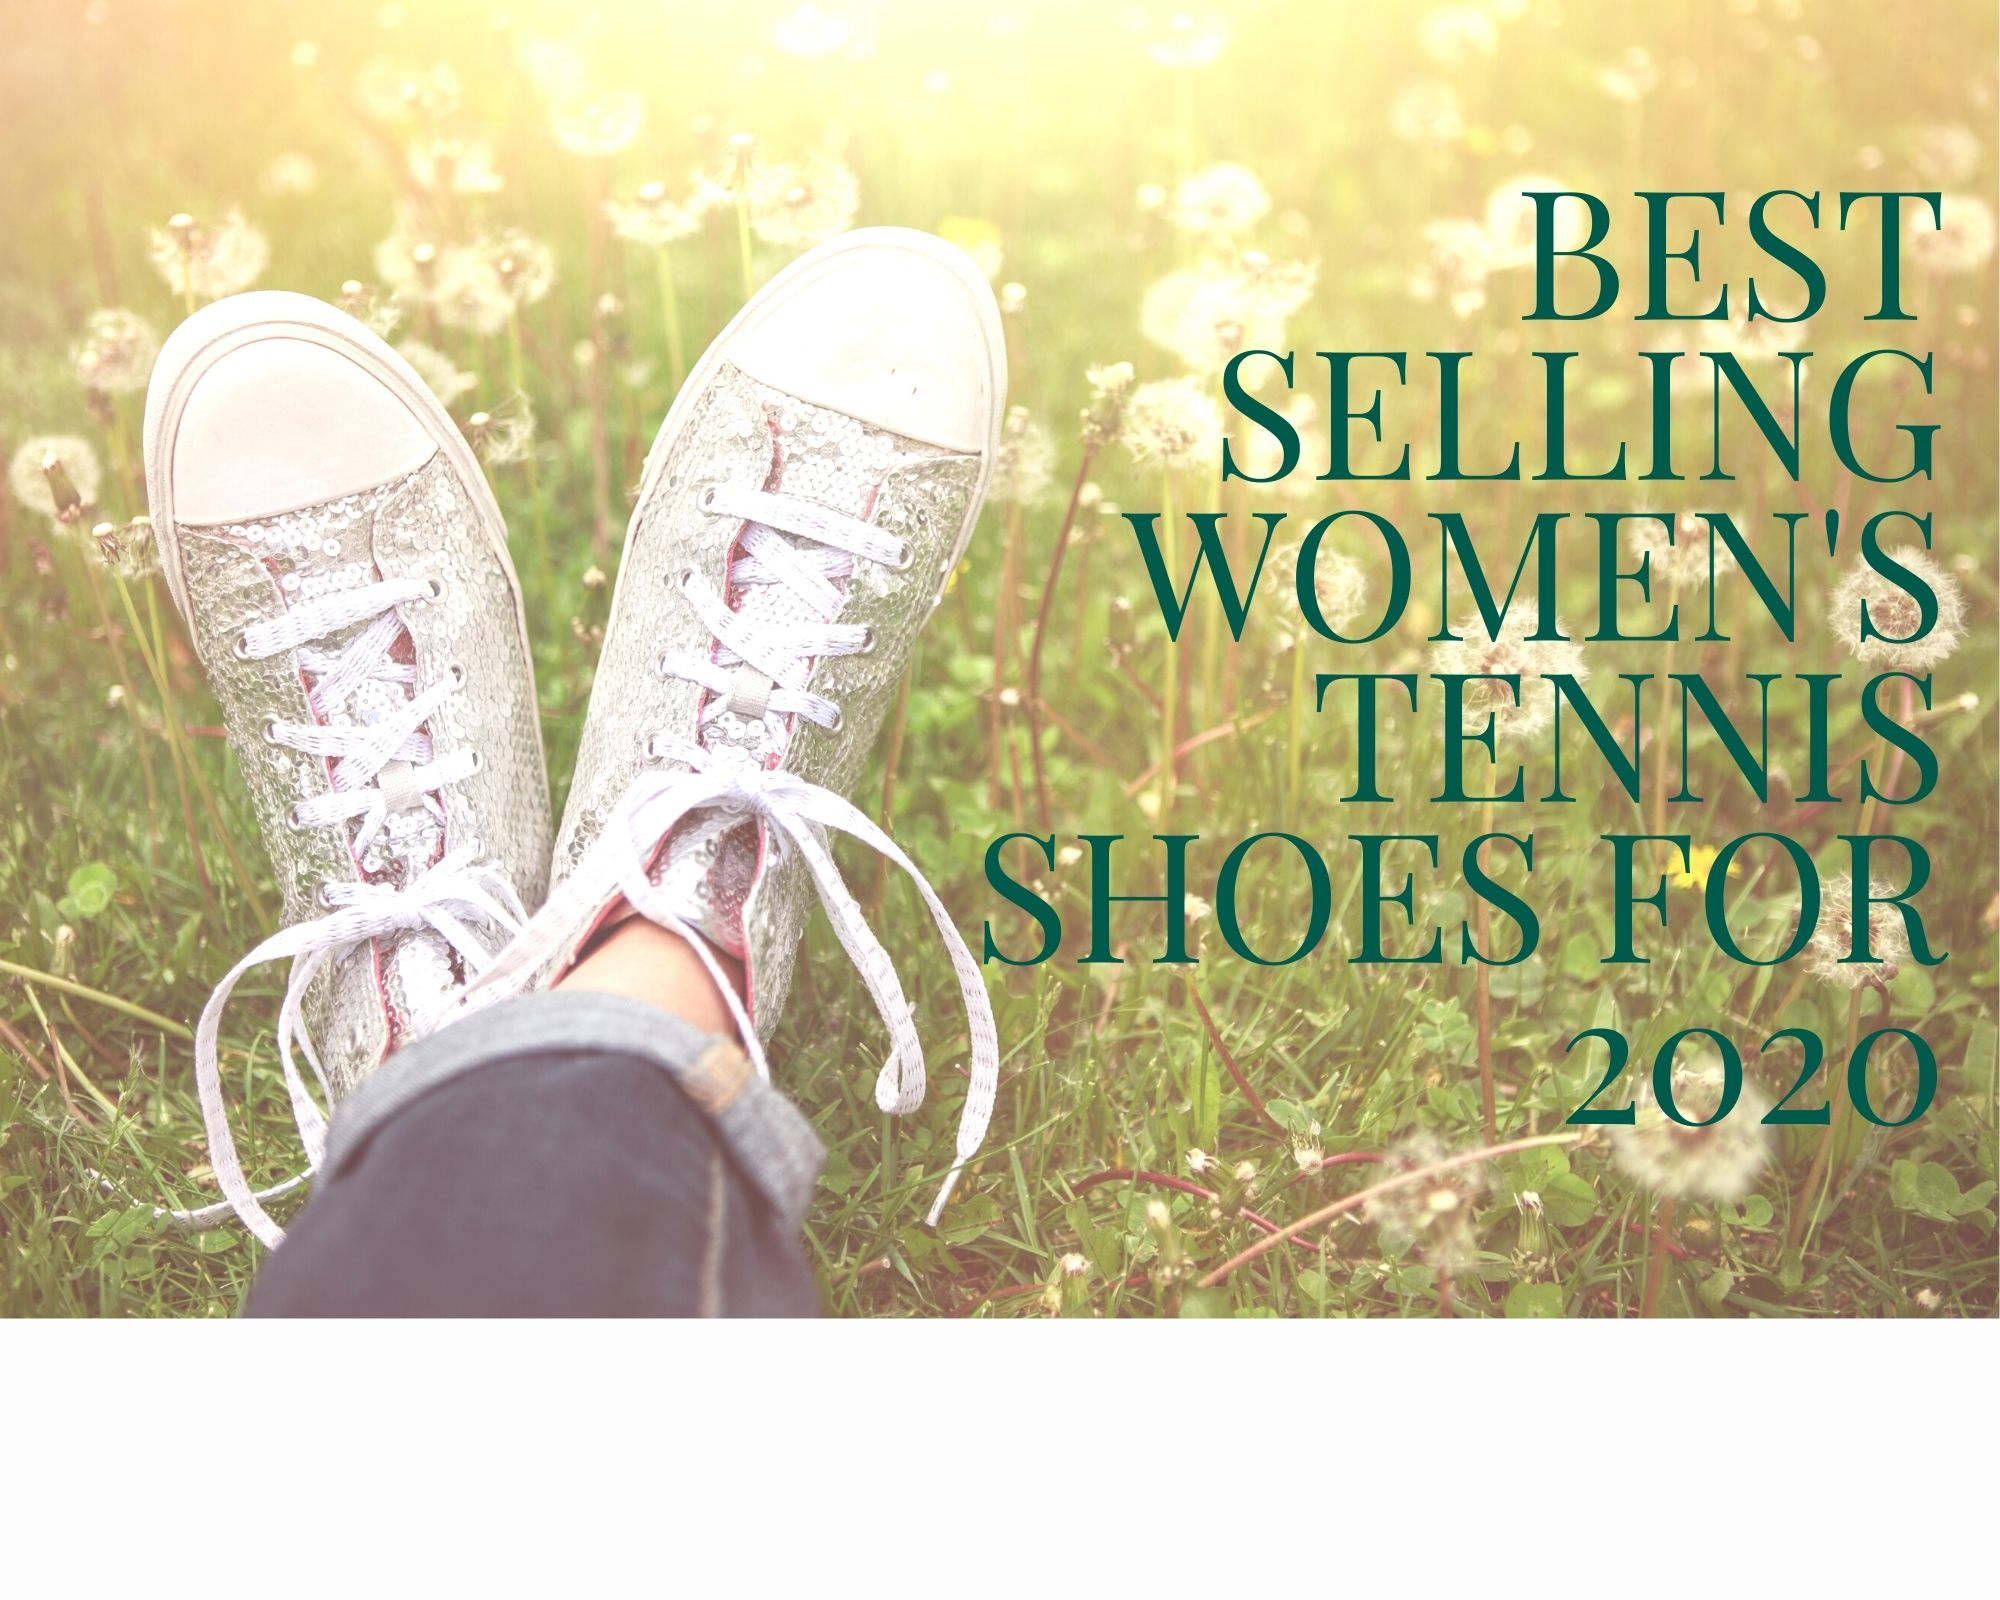 Best Selling Women's Tennis Shoes for 2020